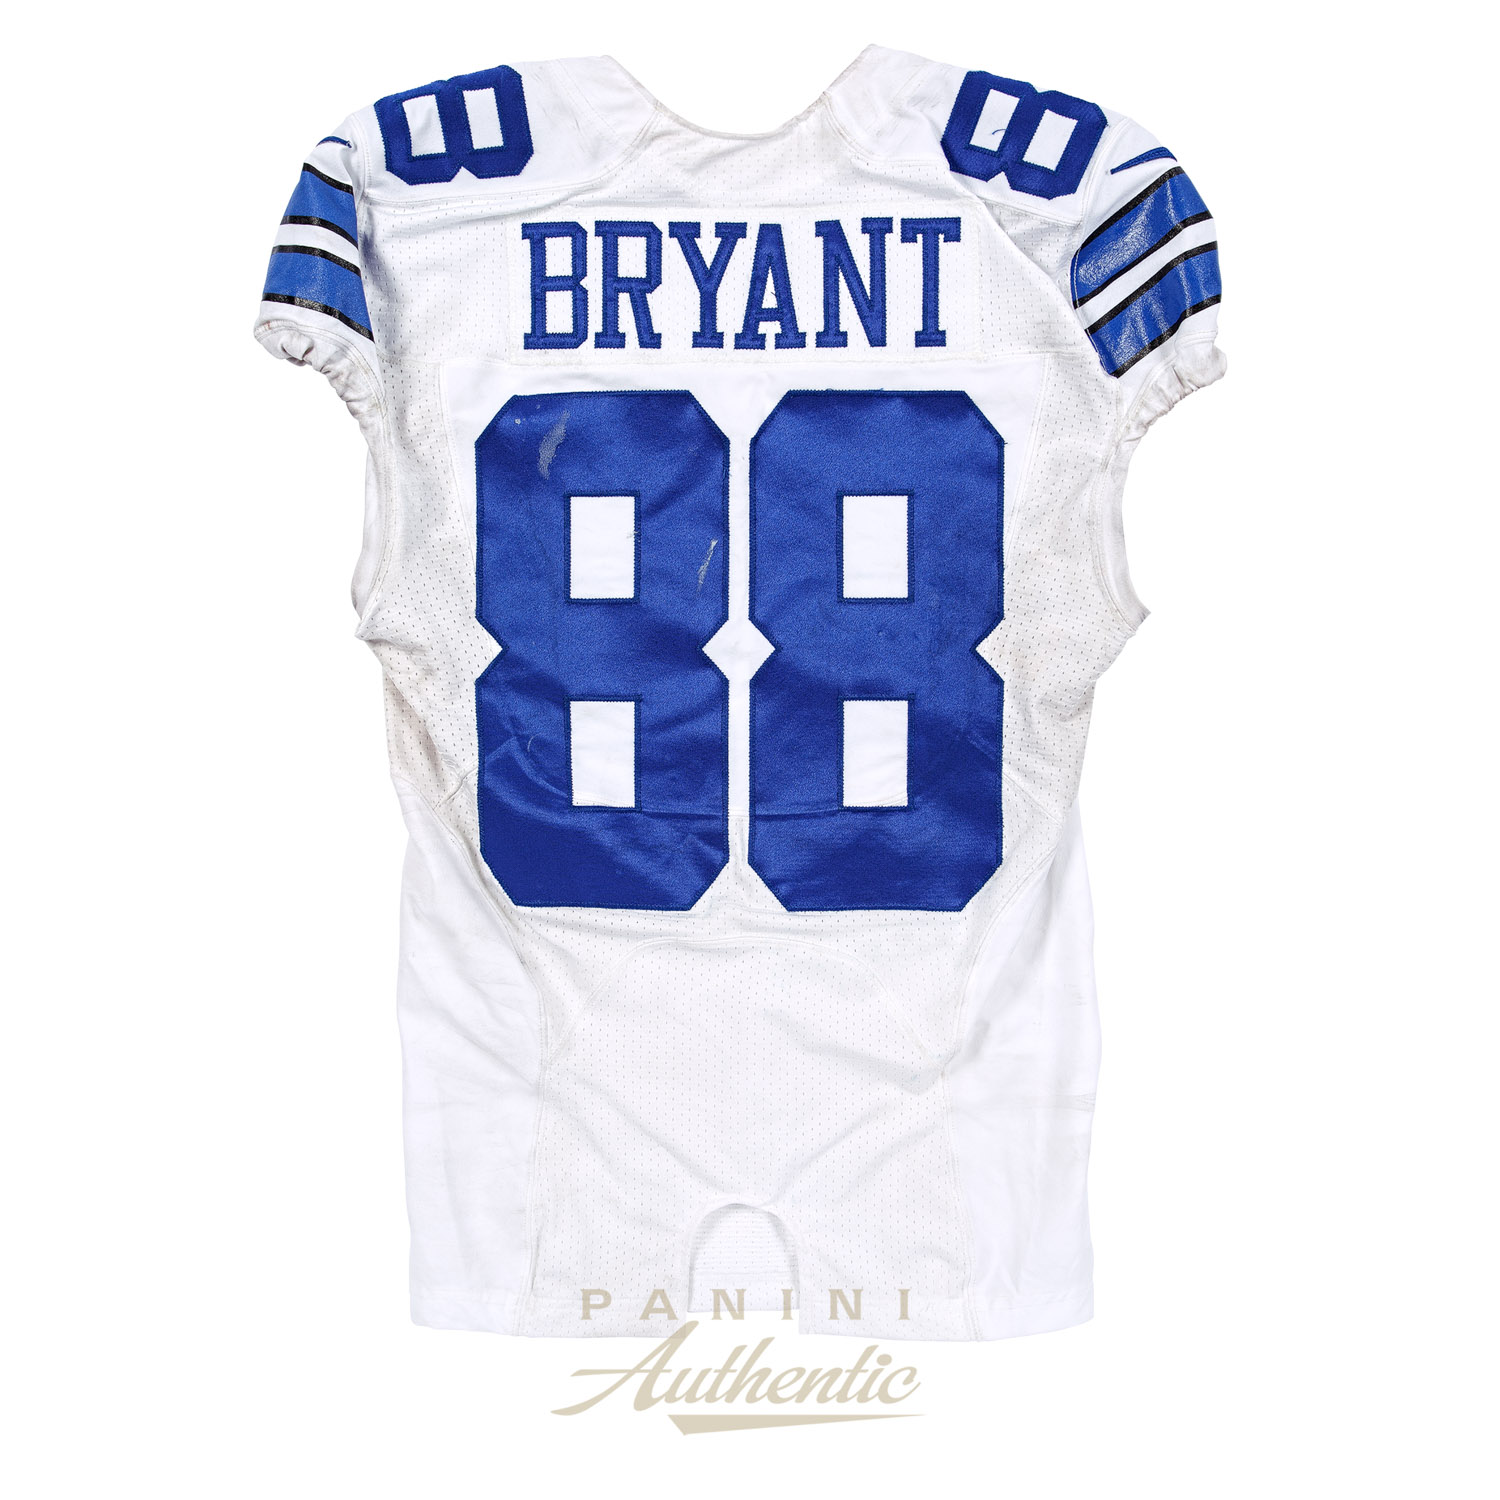 meet 9af53 1bca5 Dez Bryant Dallas Cowboys Game Worn Jersey From 9/13/2015 vs ...